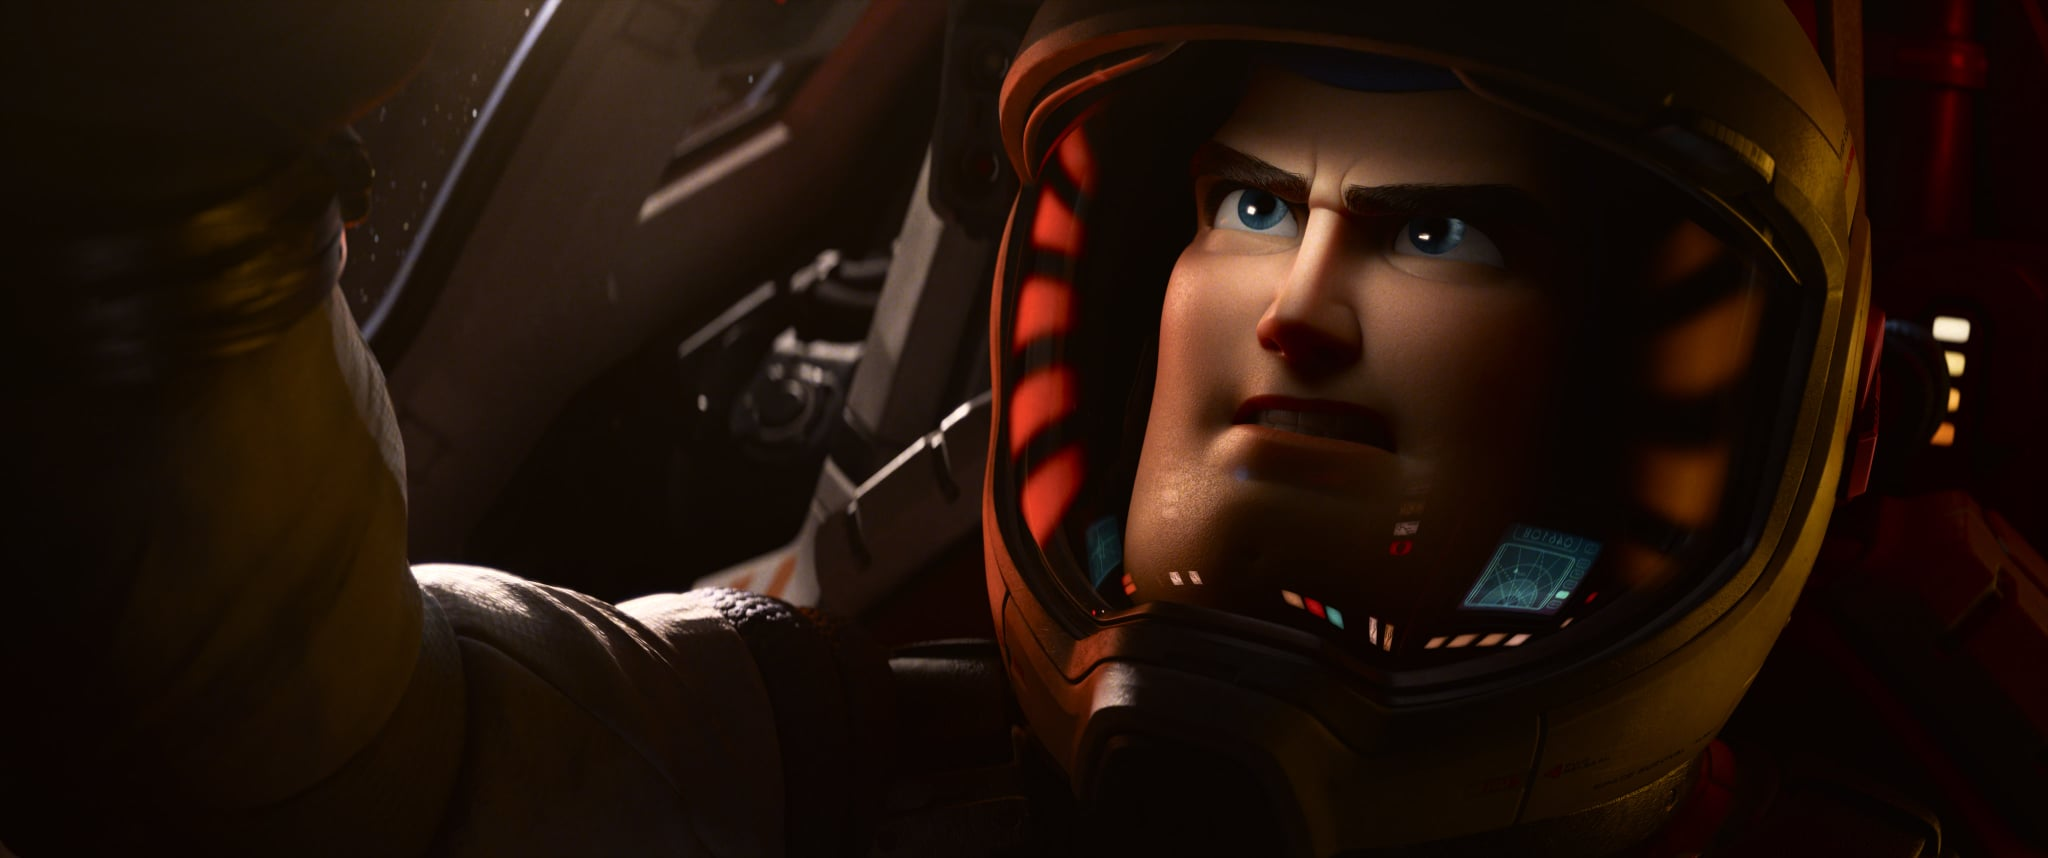 LIGHTYEAR, slated to open in theaters on June 17, 2022, is a sci-fi action-adventure and the definitive origin story of Buzz Lightyear (voice of Chris Evans)—the hero who inspired the toy. The film reveals how a young test pilot became the Space Ranger that we all know him to be today. © 2020 Disney/Pixar. All Rights Reserved.